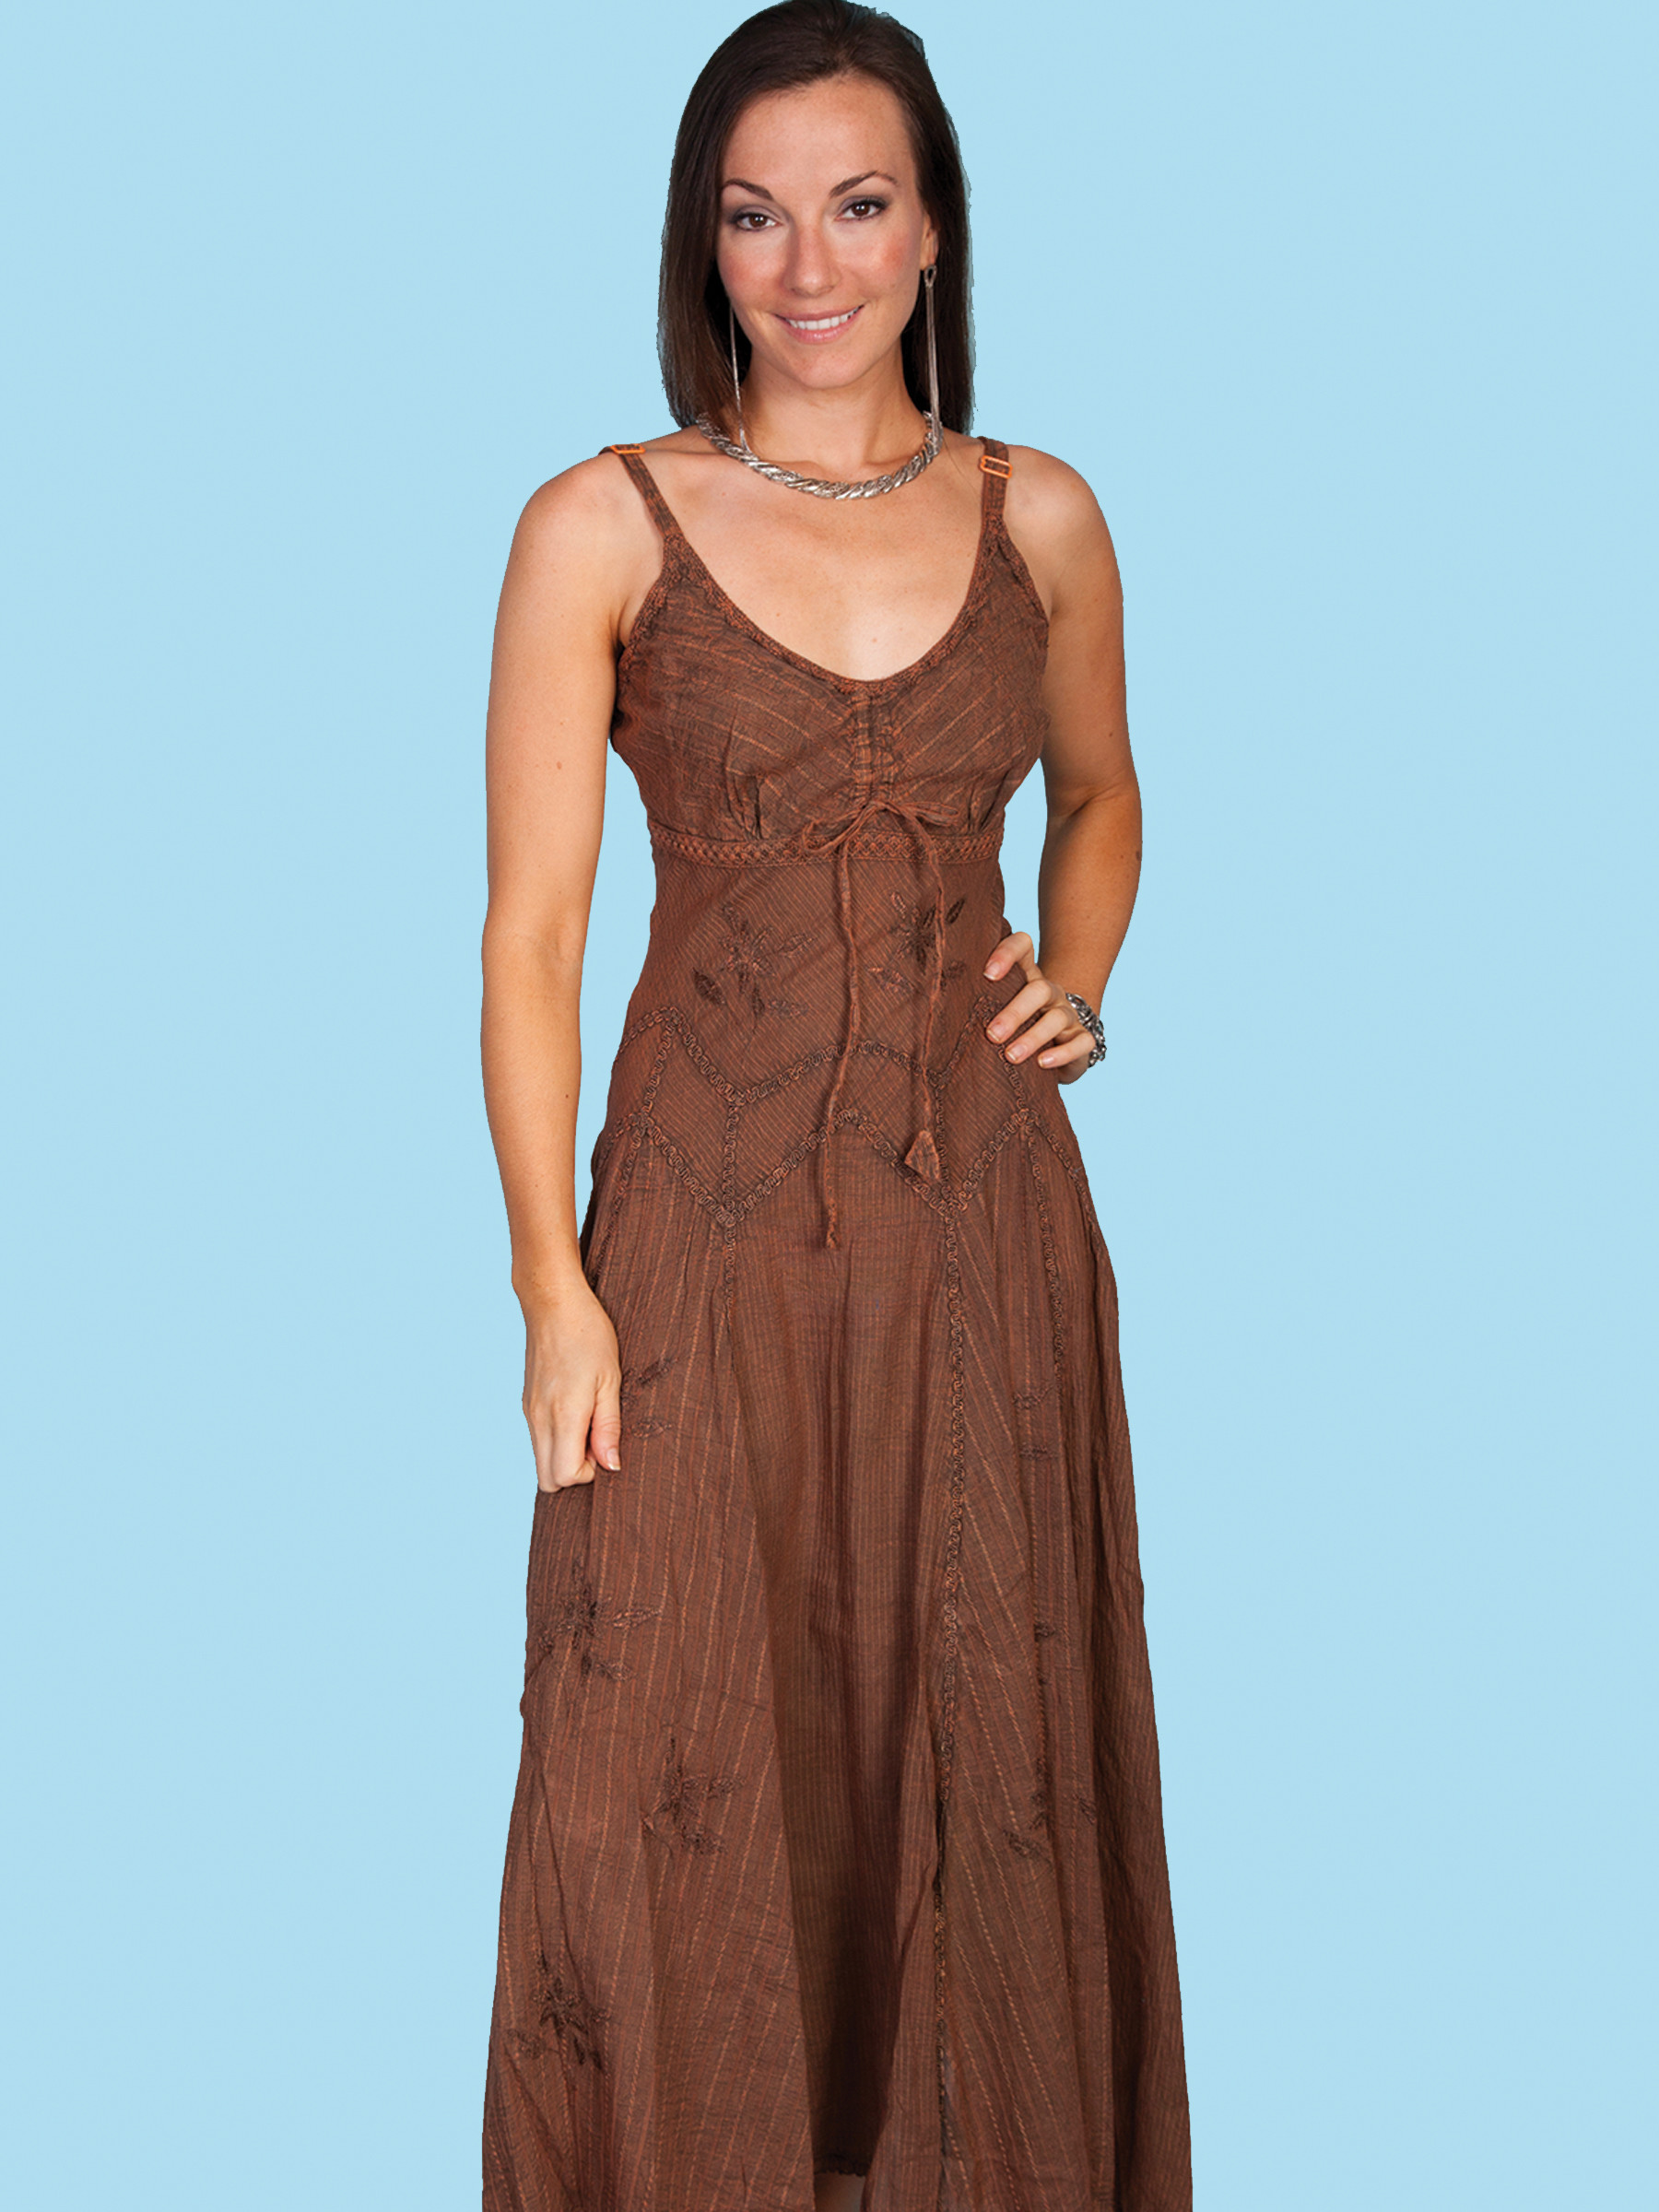 Scully^ Womens Copper Spaghetti Strap Long Western Dress